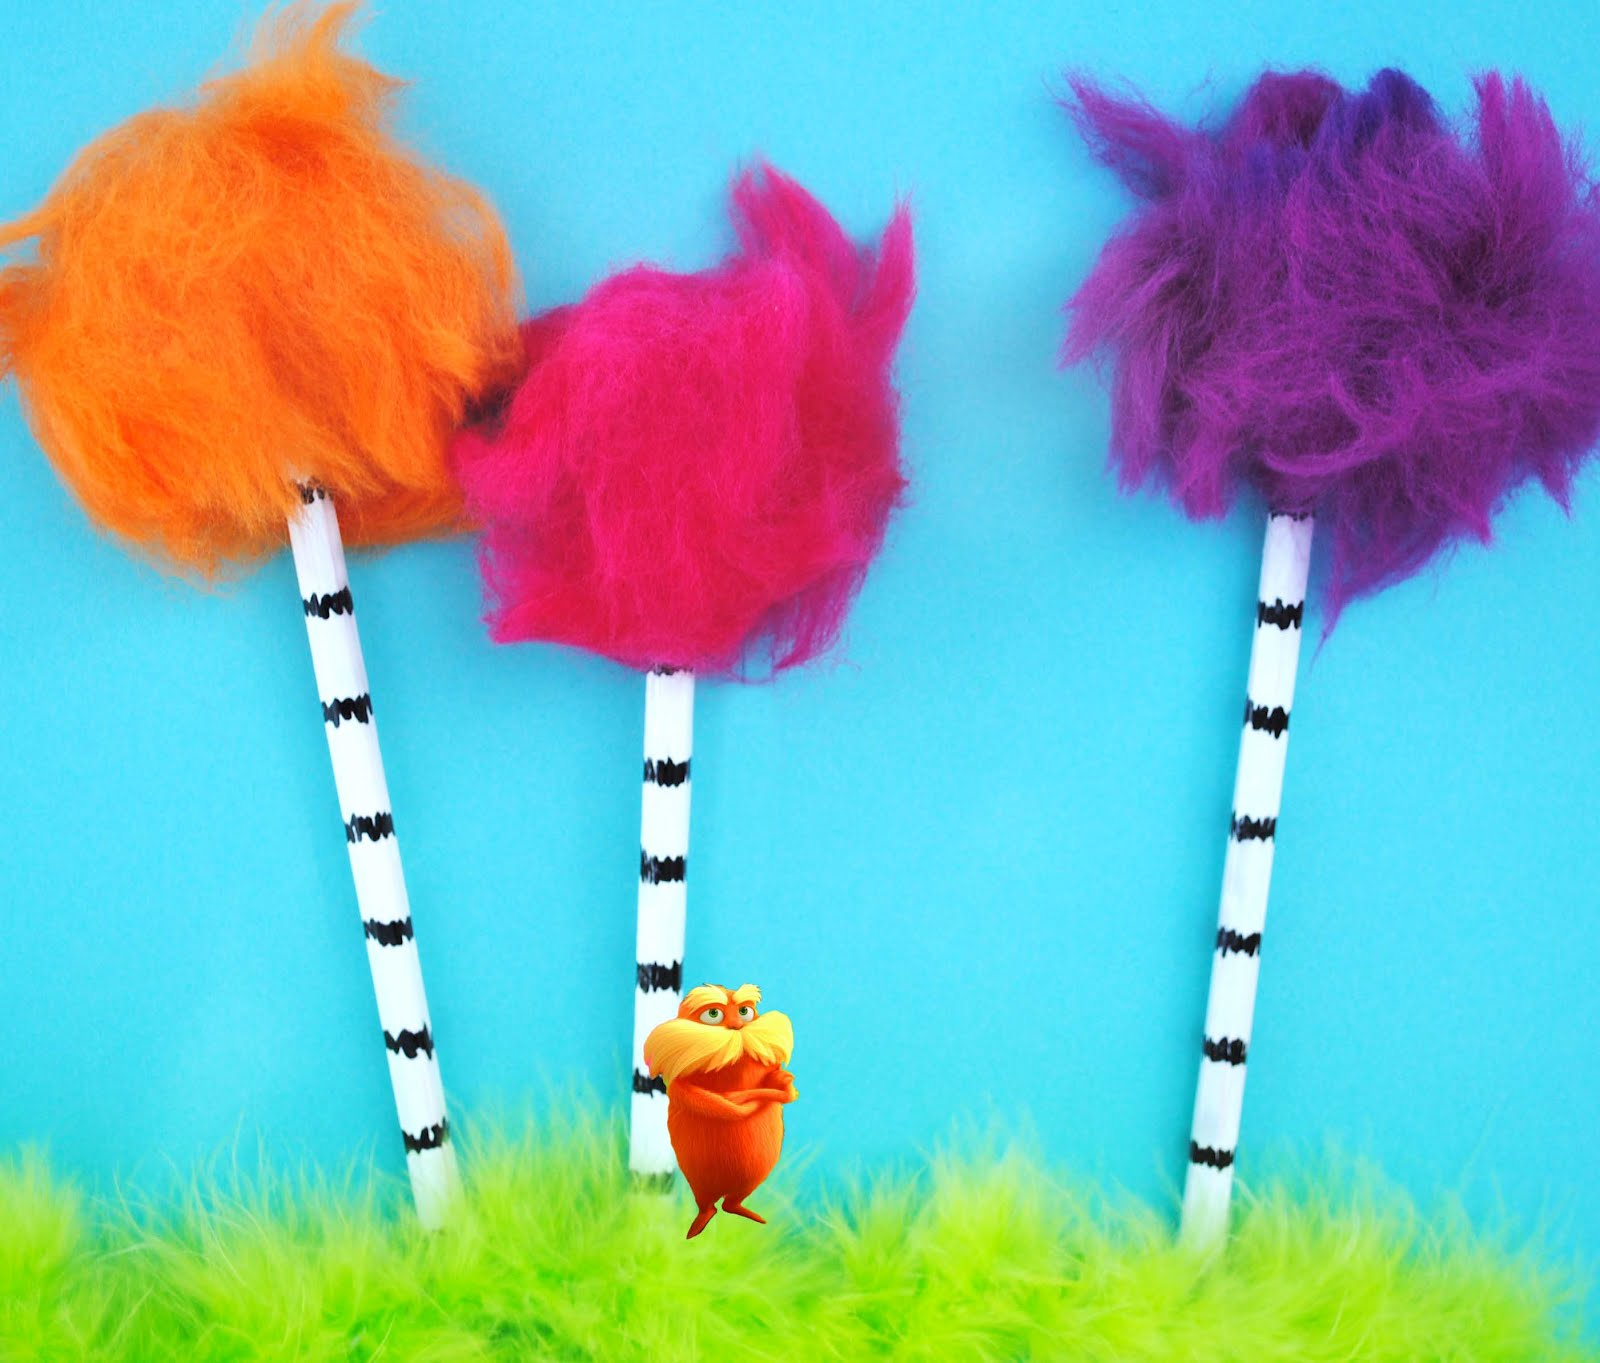 The Lorax Truffula Trees Today i'm participating in the